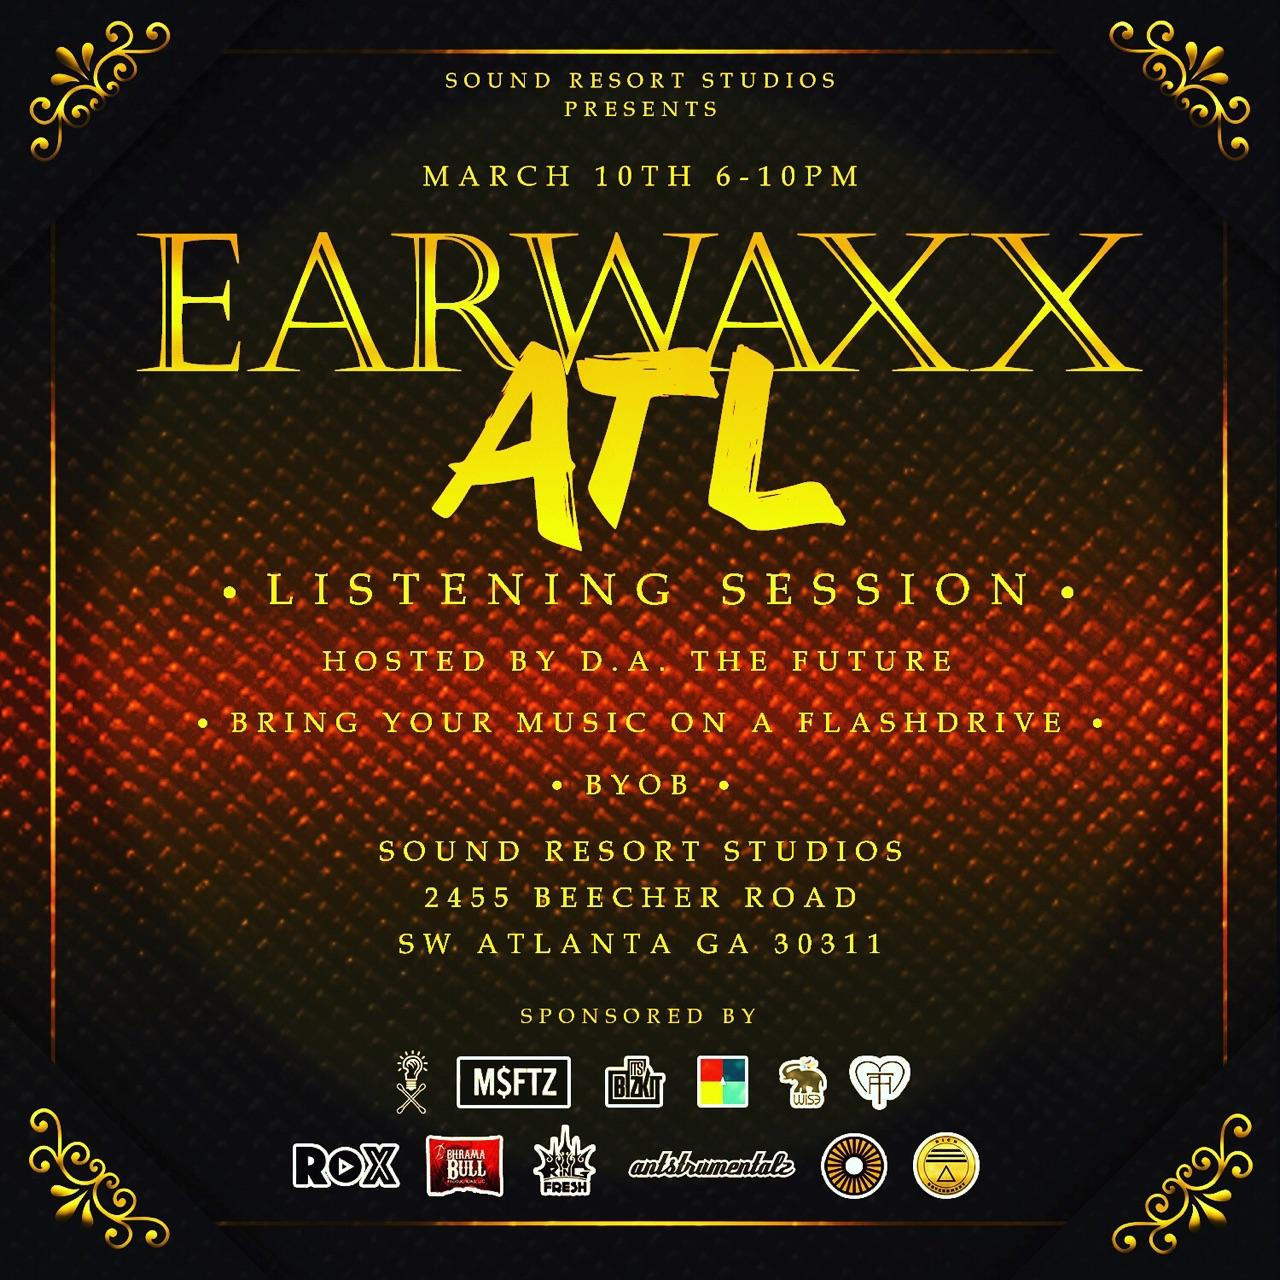 3rd Earwaxx Listening session